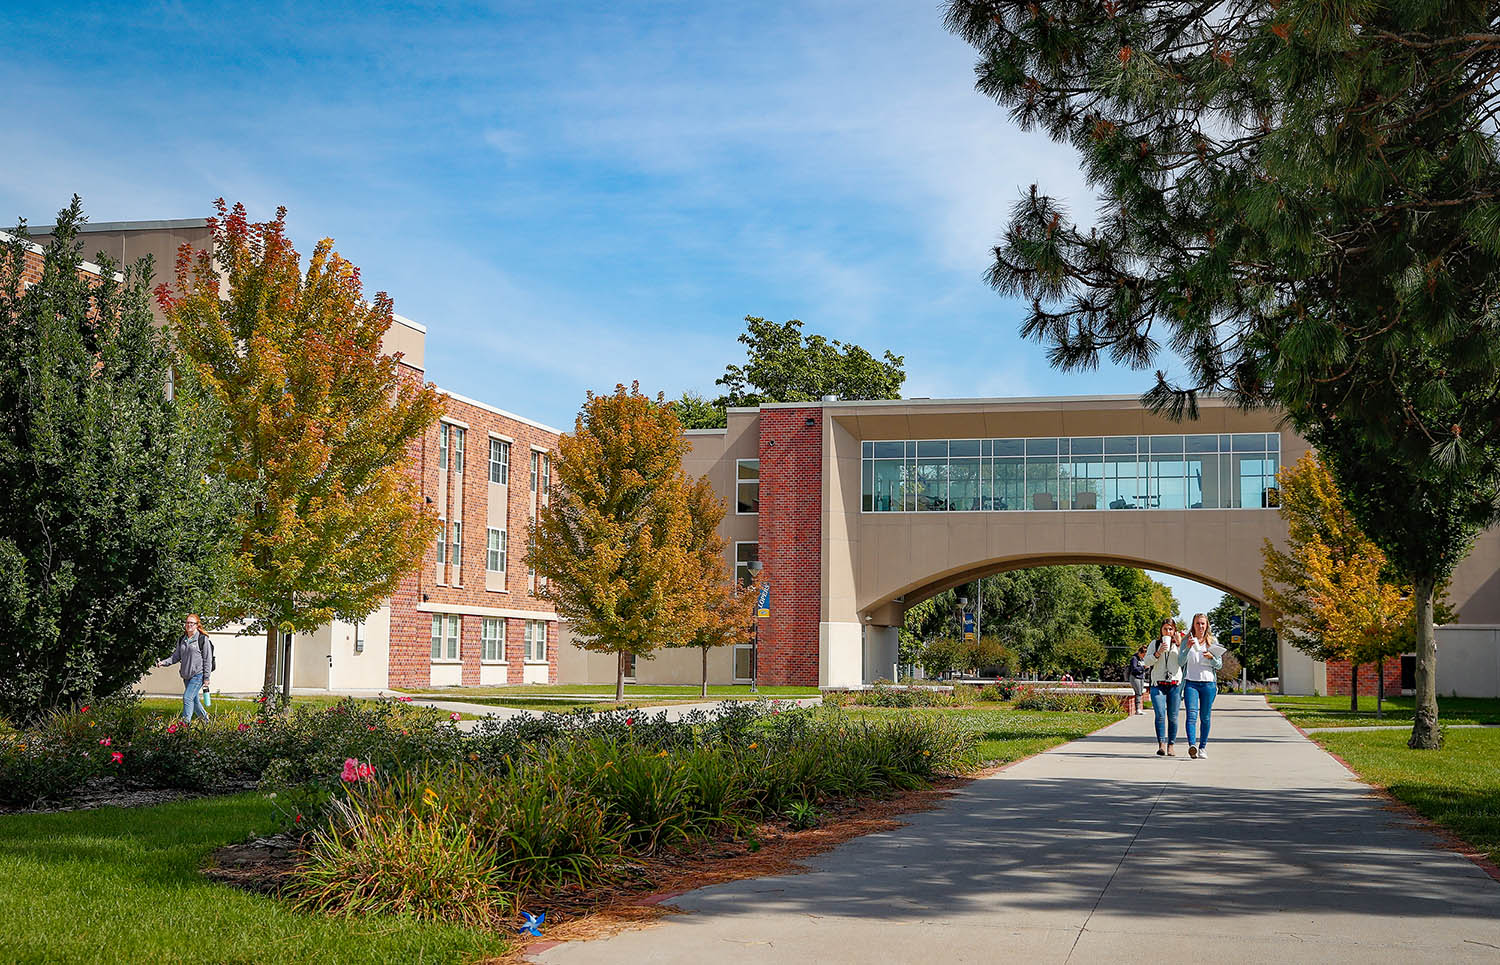 William Nester, the first chancellor of UNK, led the school's transition into the University of Nebraska system in 1991. Nester Hall is named in his honor, with the University View elevated walkway and lounge representing his vision for the campus.